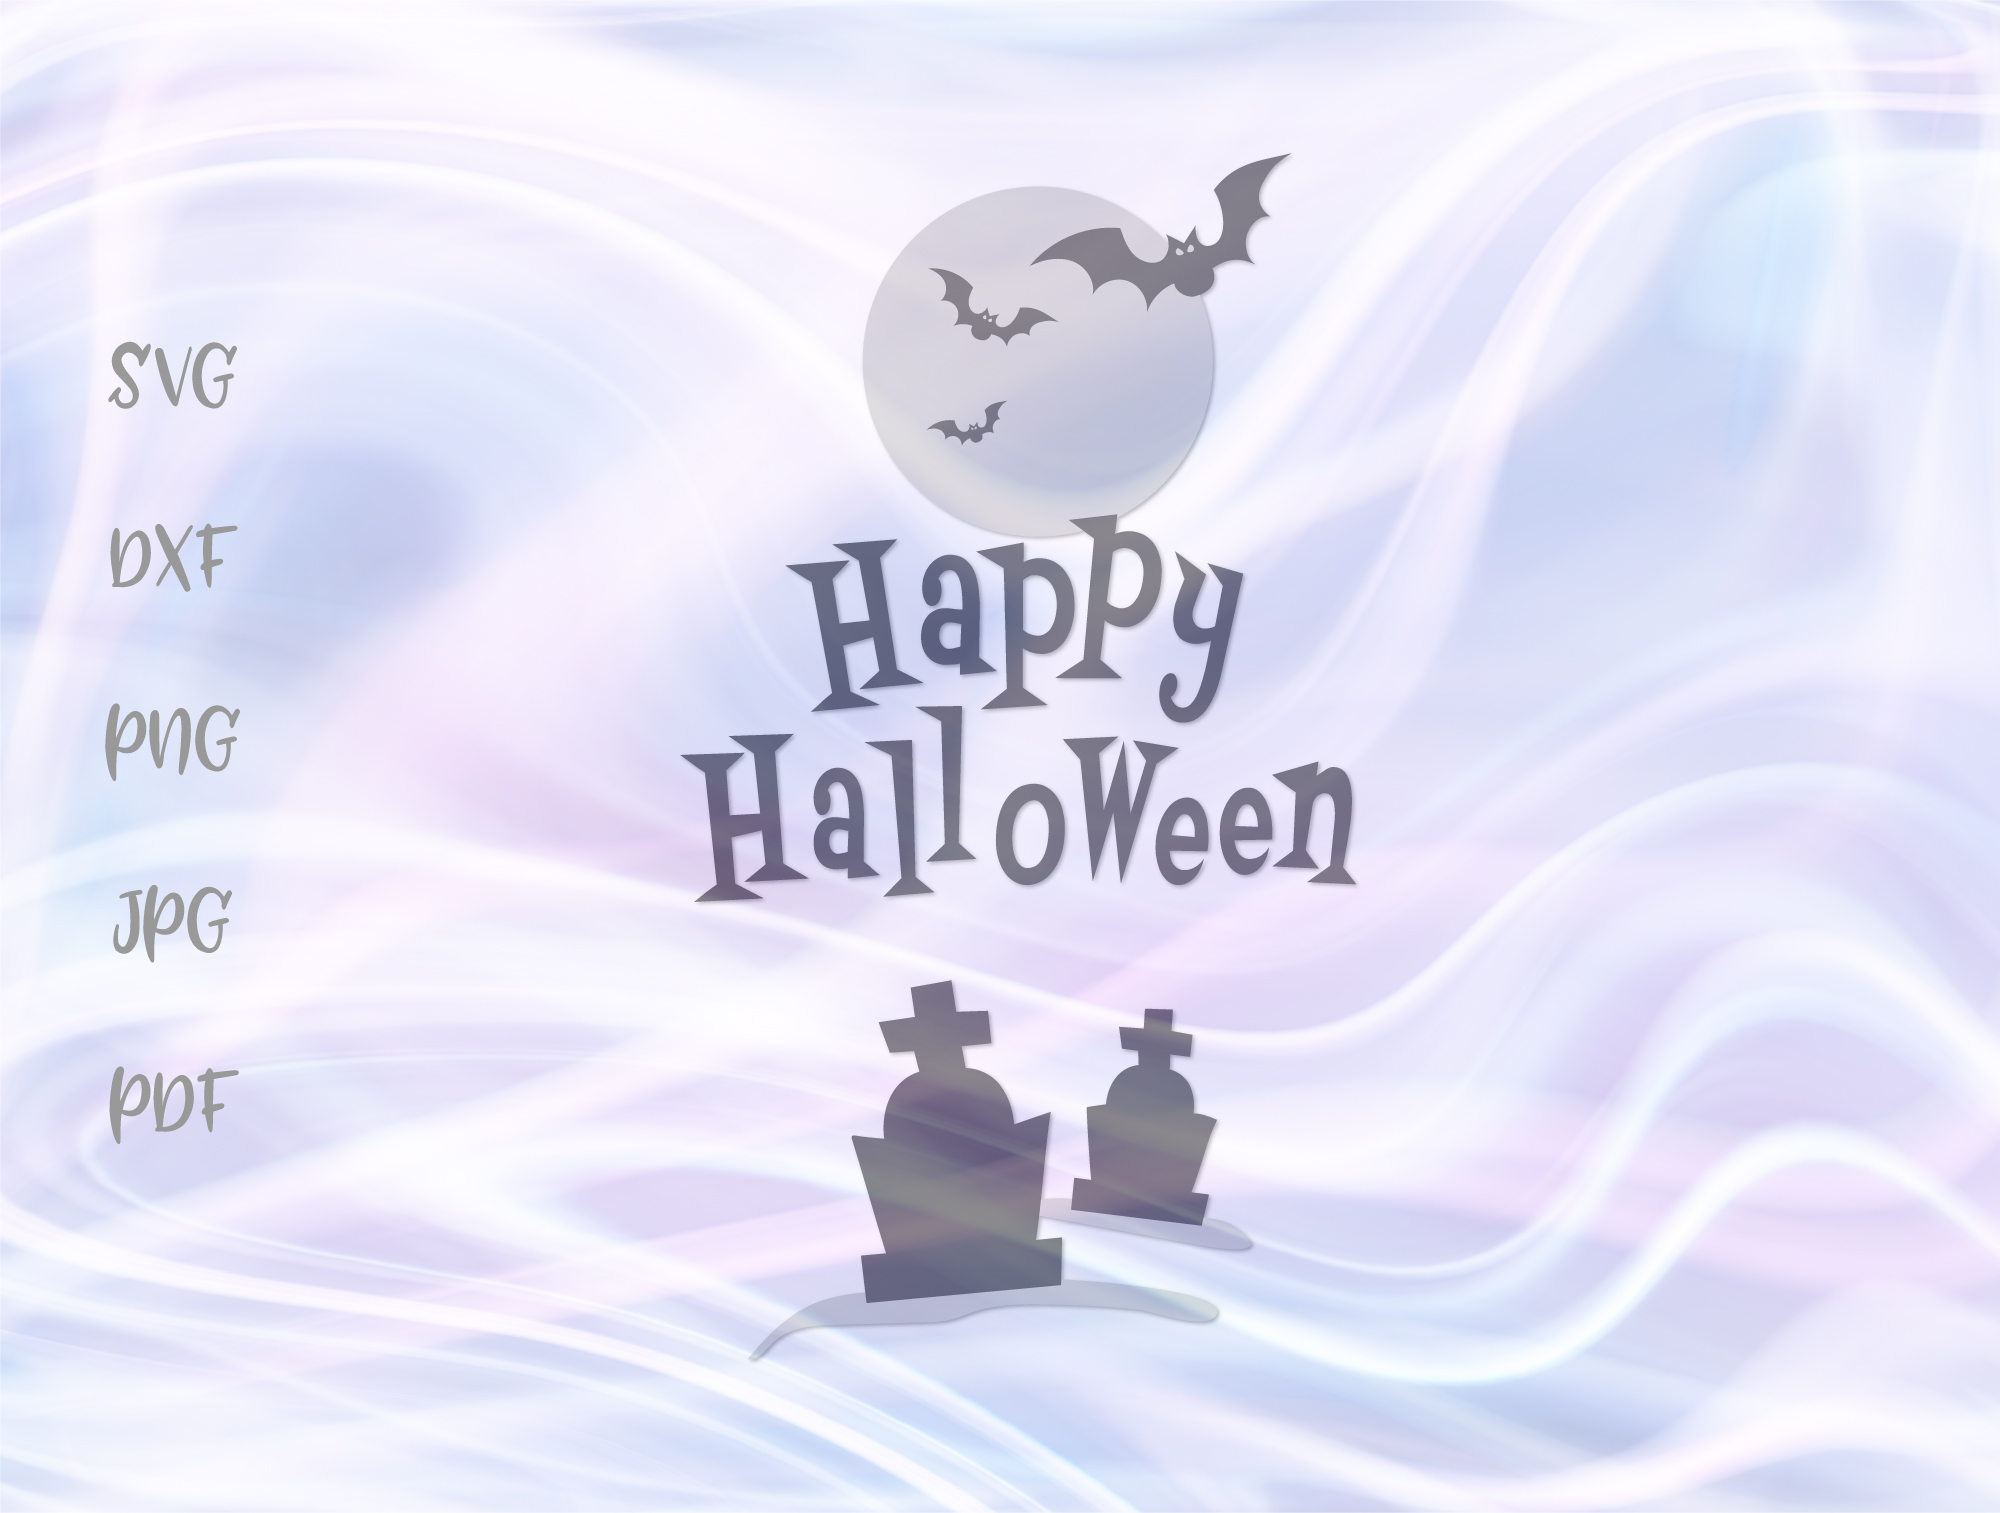 Download Free Happy Halloween Night Cemetery Graves Graphic By Digitals By for Cricut Explore, Silhouette and other cutting machines.